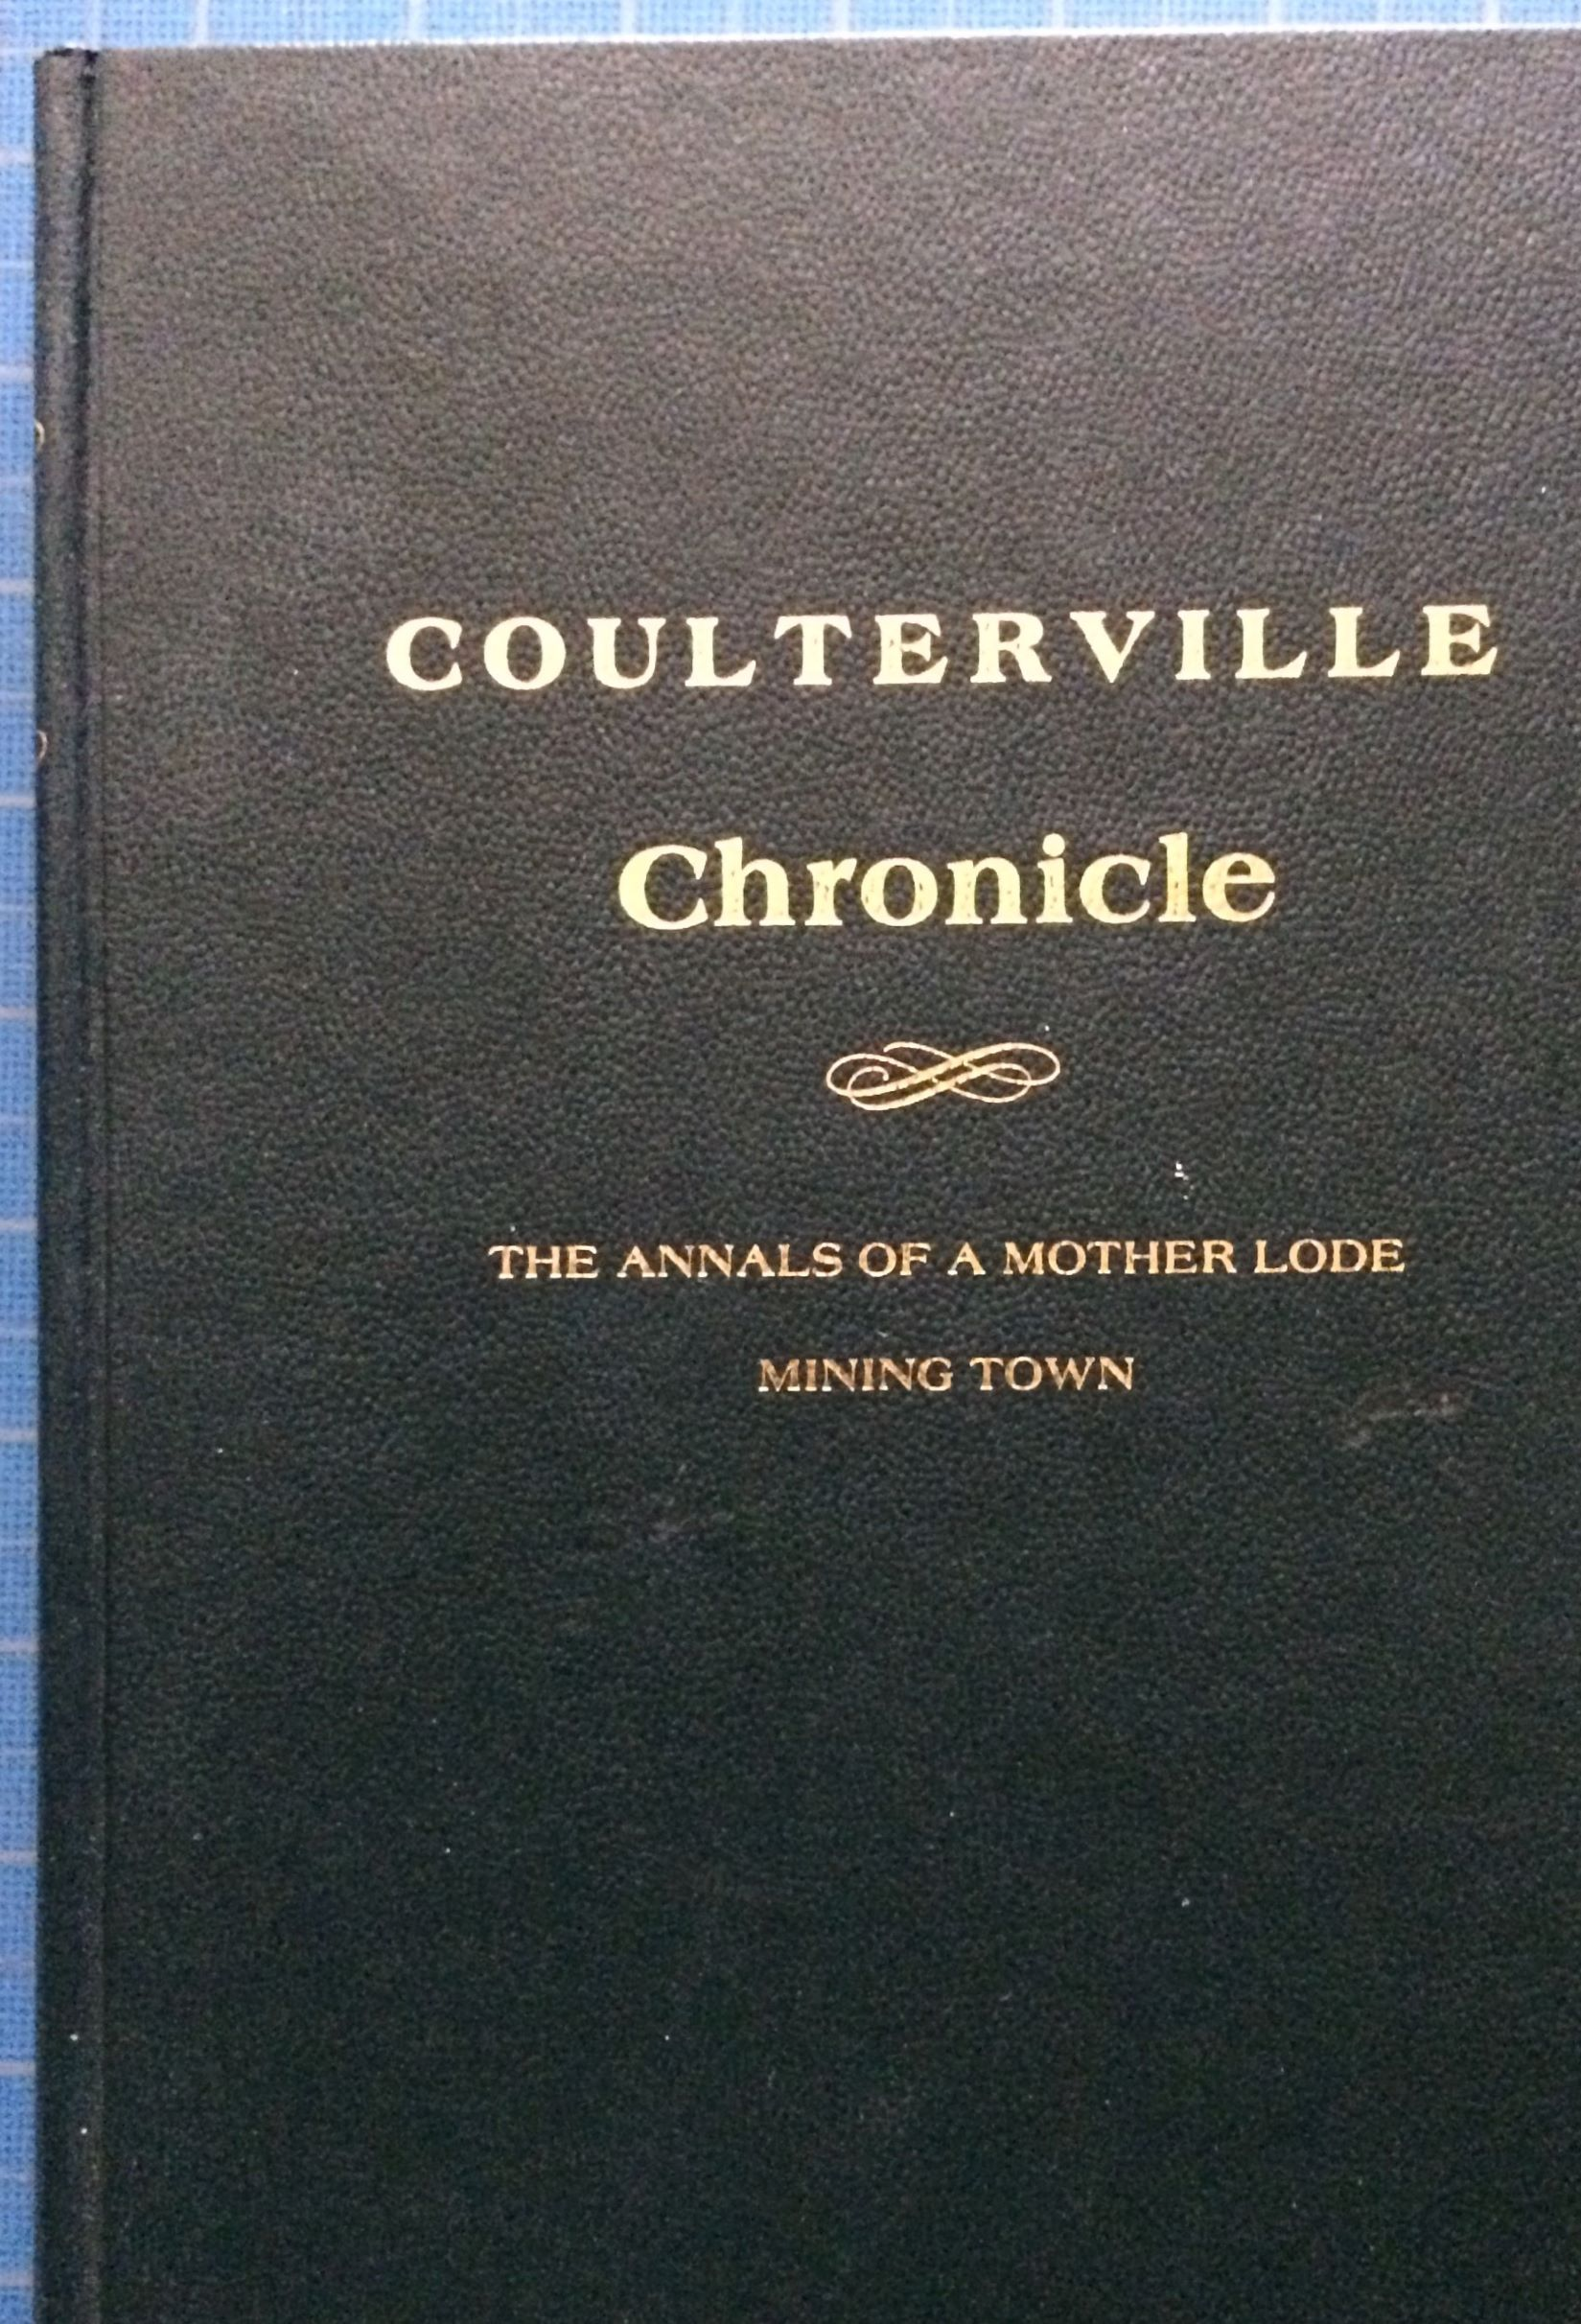 Image for Coulterville Chronicles. The Annals of a Mother Lode Mining Town.